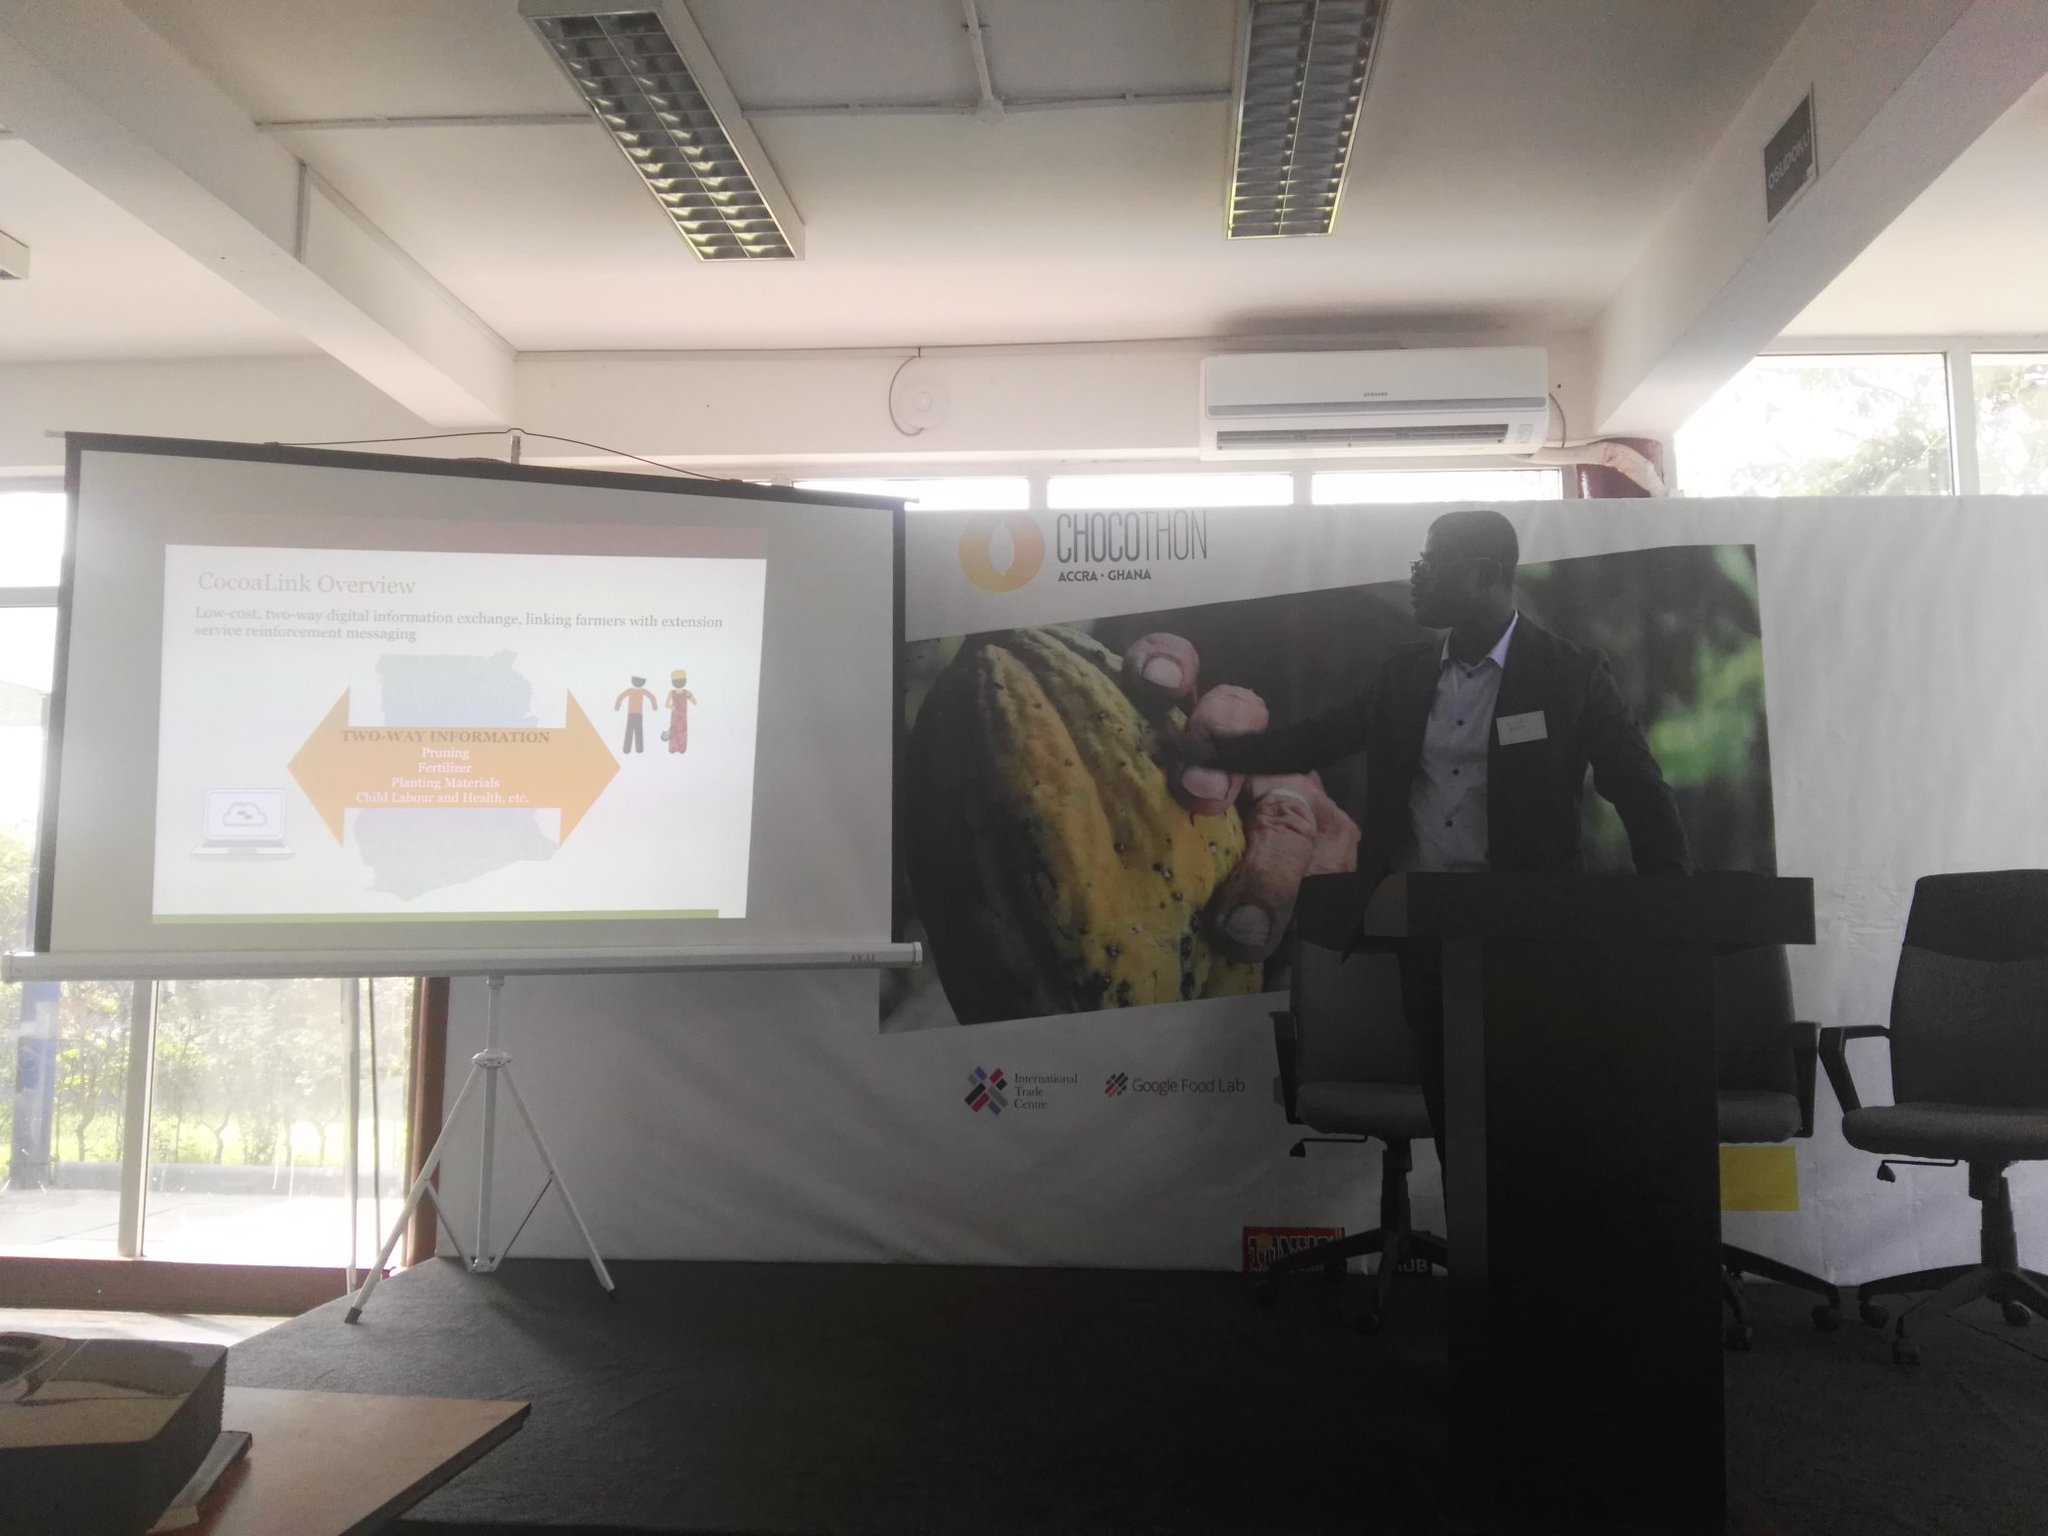 Insightful presentation by Vincent Manu of World Cocoa Foundation at #Chocothon. Strengthen cocoa value chain @WorldCocoa @ImpactHubAccra https://t.co/GA0nlluc7v